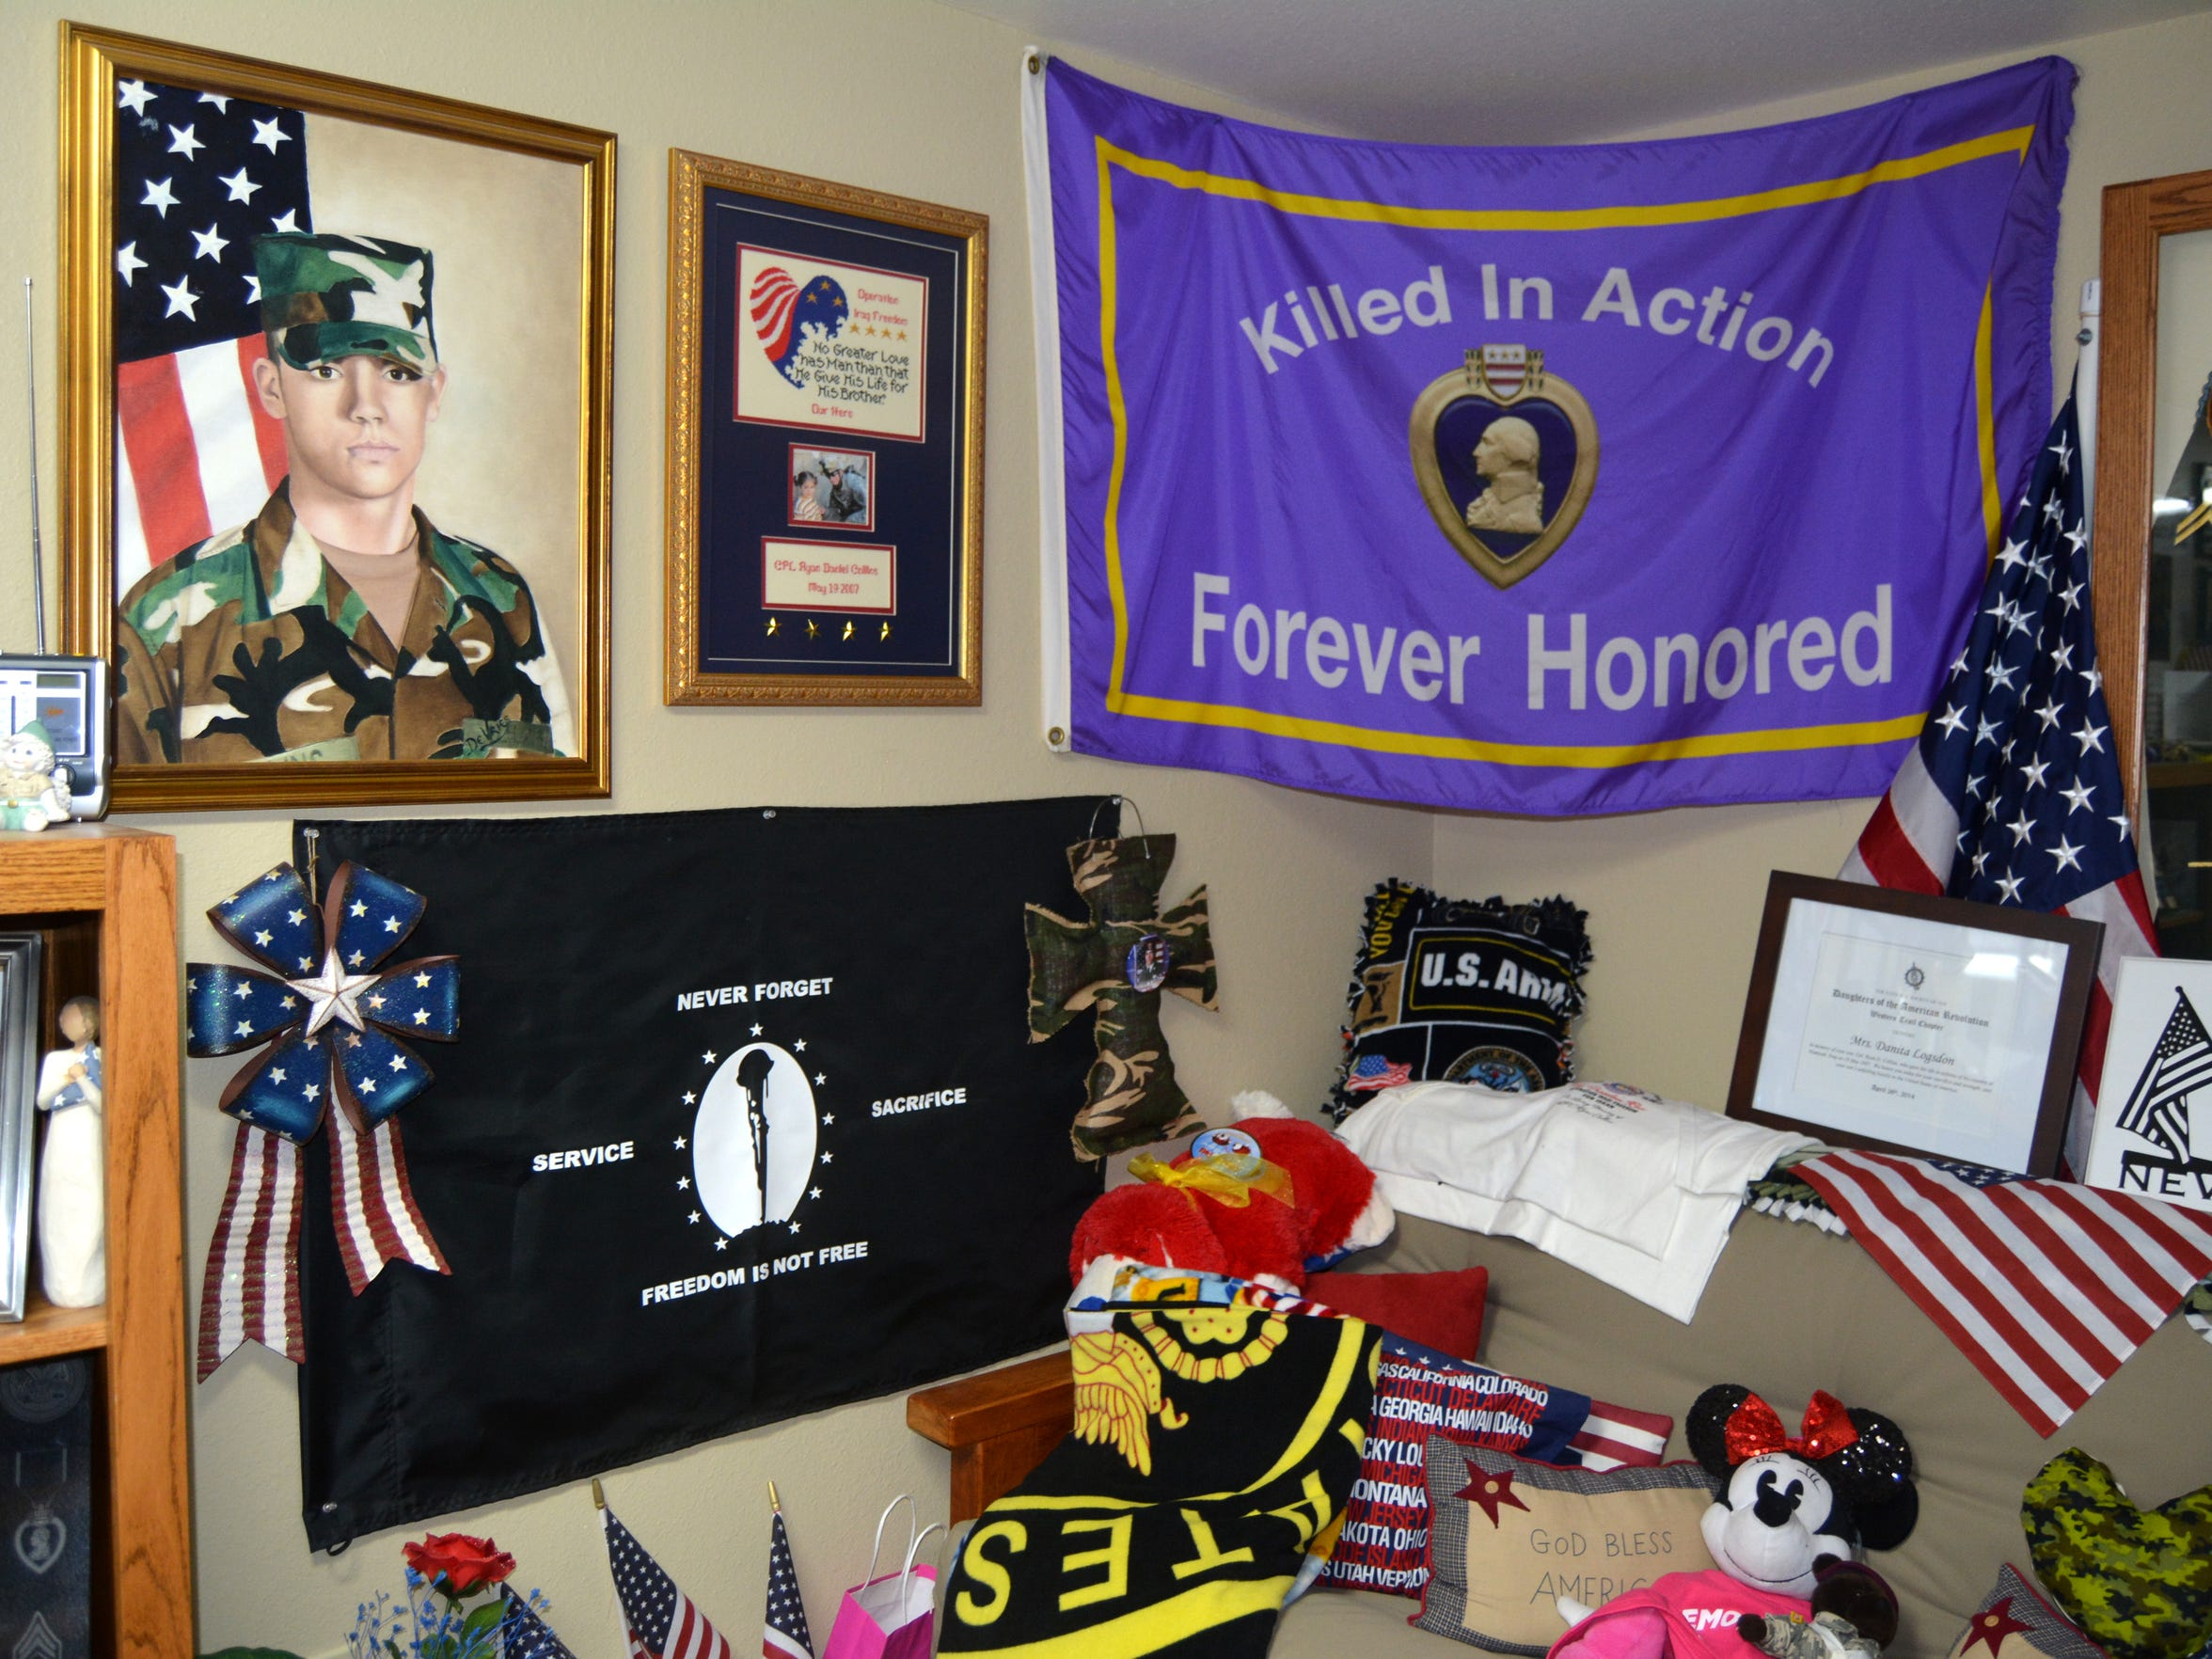 VERNON -- Flags, paintings, blankets, pillows, stuffed animals and many more items have been given to the Logsdon family in memory of Ryan Collins, a corporal in the Army who was killed in action in May 2007 in Iraq. He will never be forgotten, his mother, Danita, said.